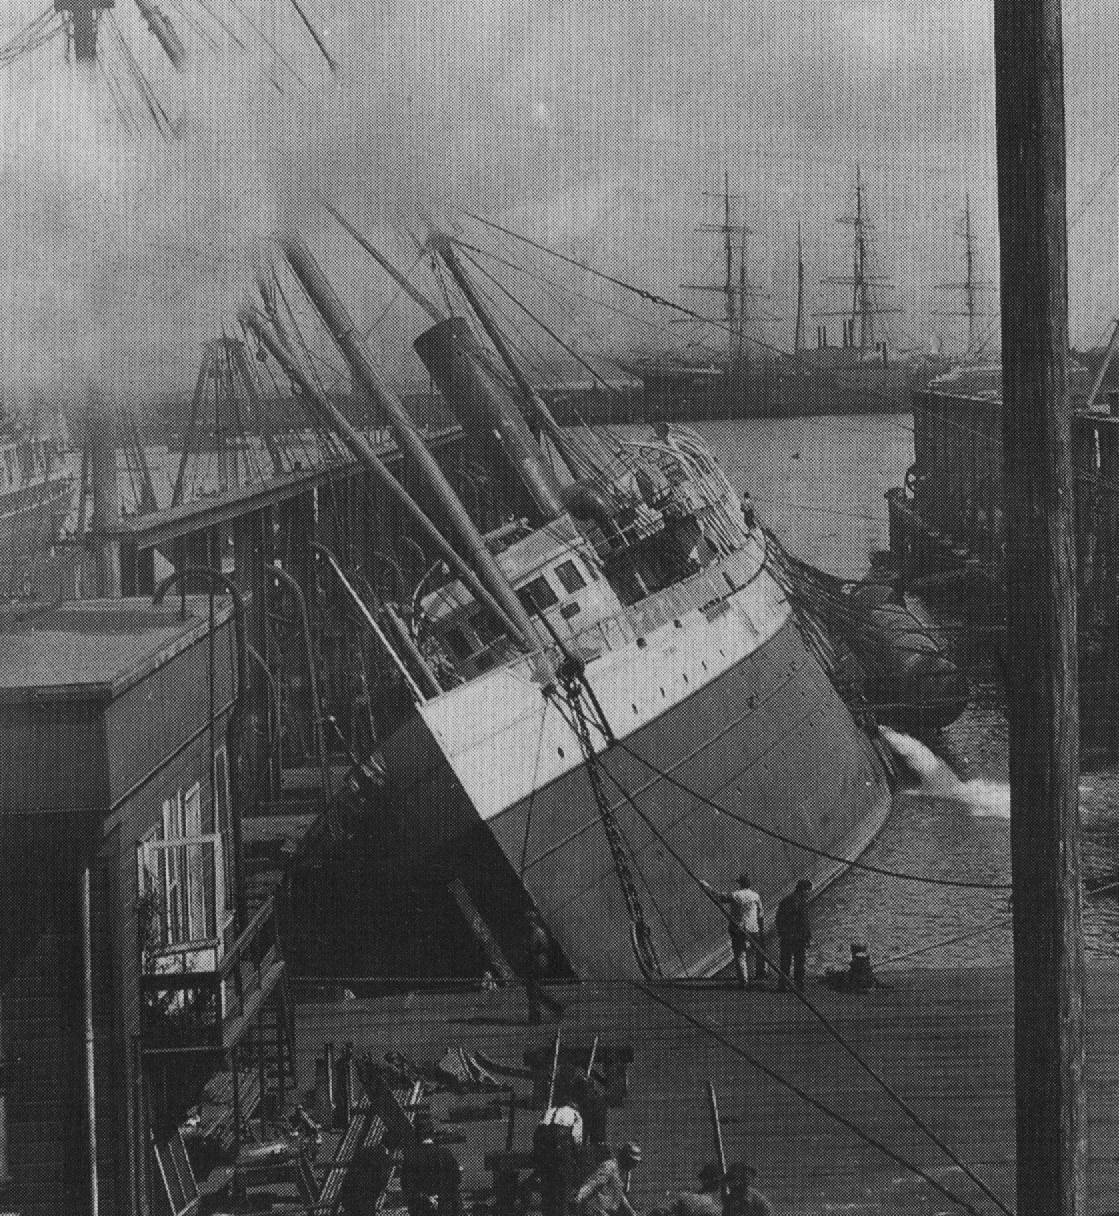 Columbia after her experience with the 1906 Earthquake